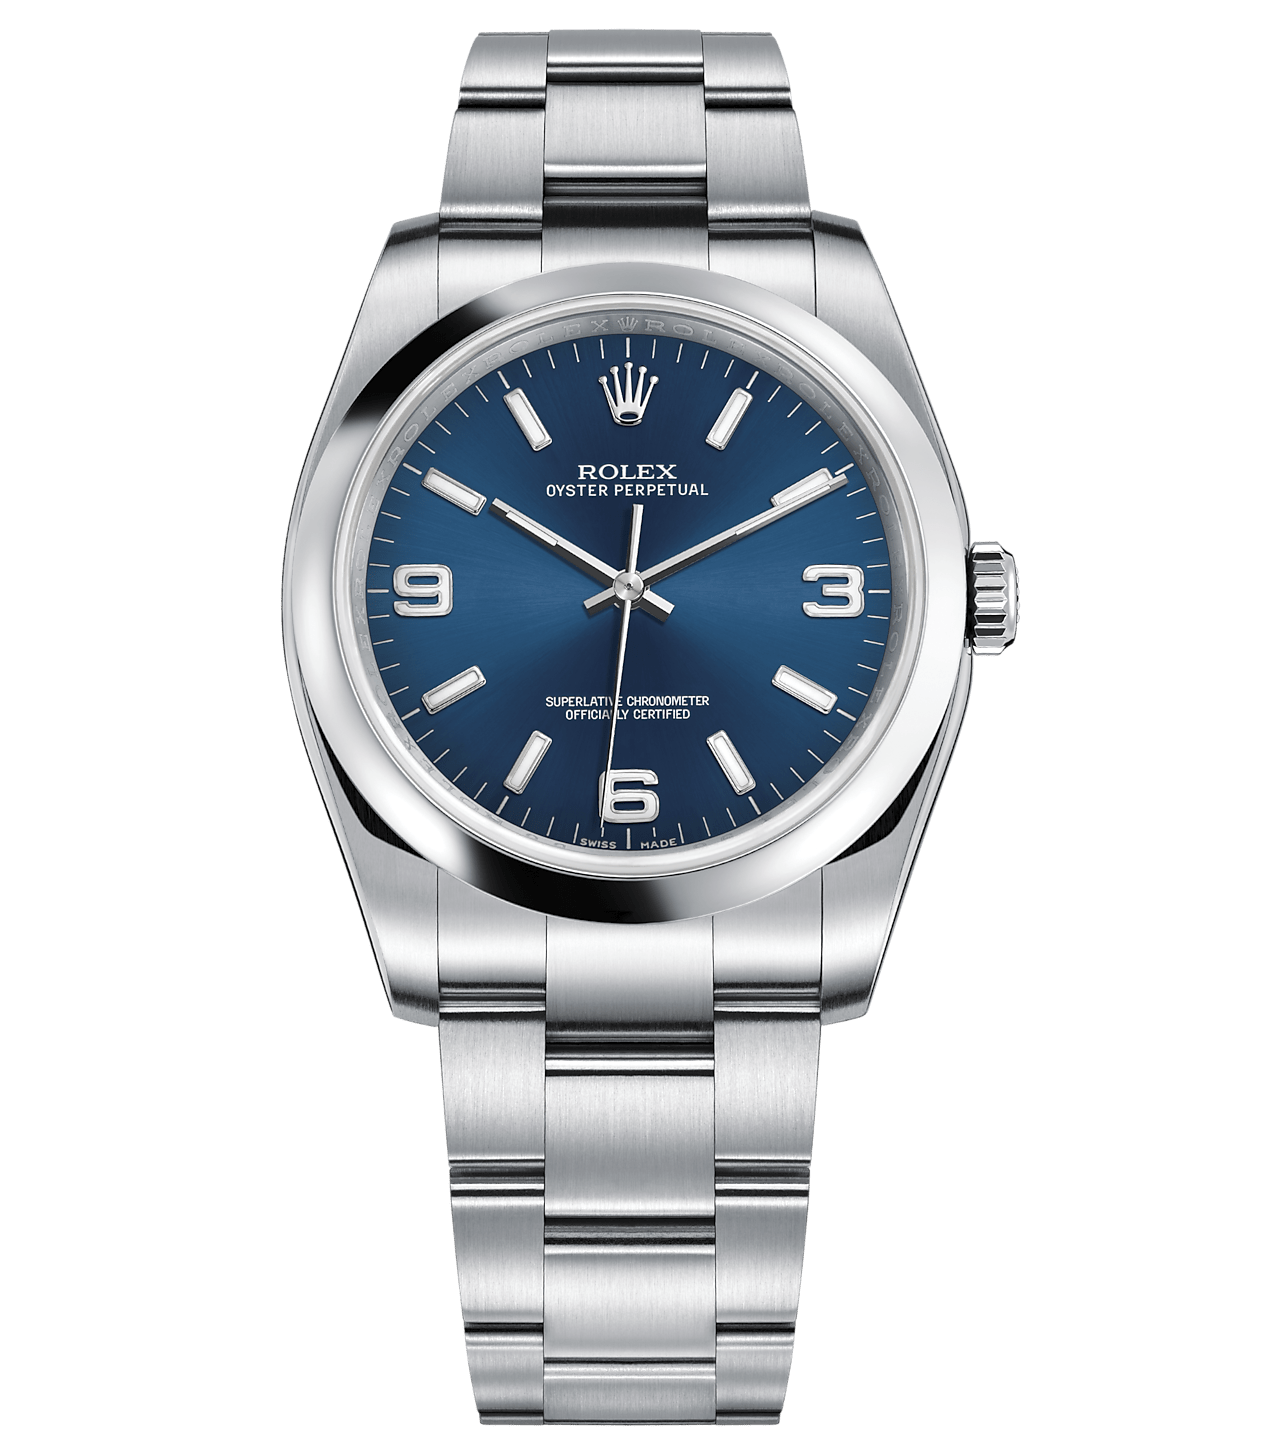 Rolex Oyster Perpetual 36 mm Steel